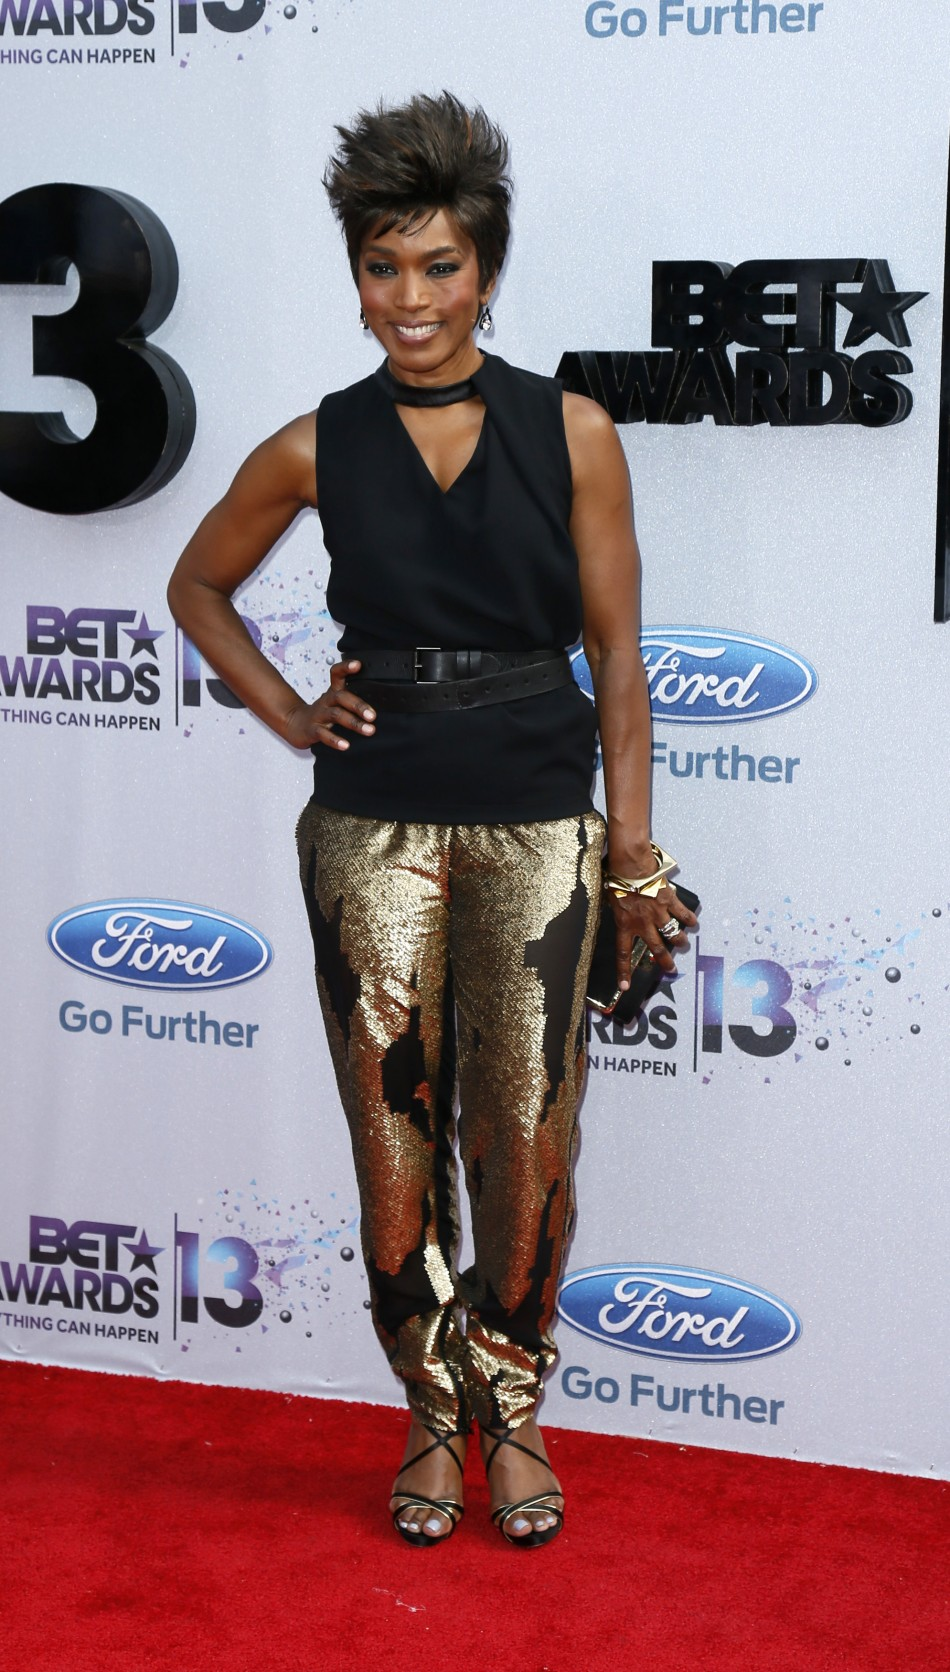 Actress Angela Bassett arrives at the 2013 BET Awards in Los Angeles, California June 30, 2013.